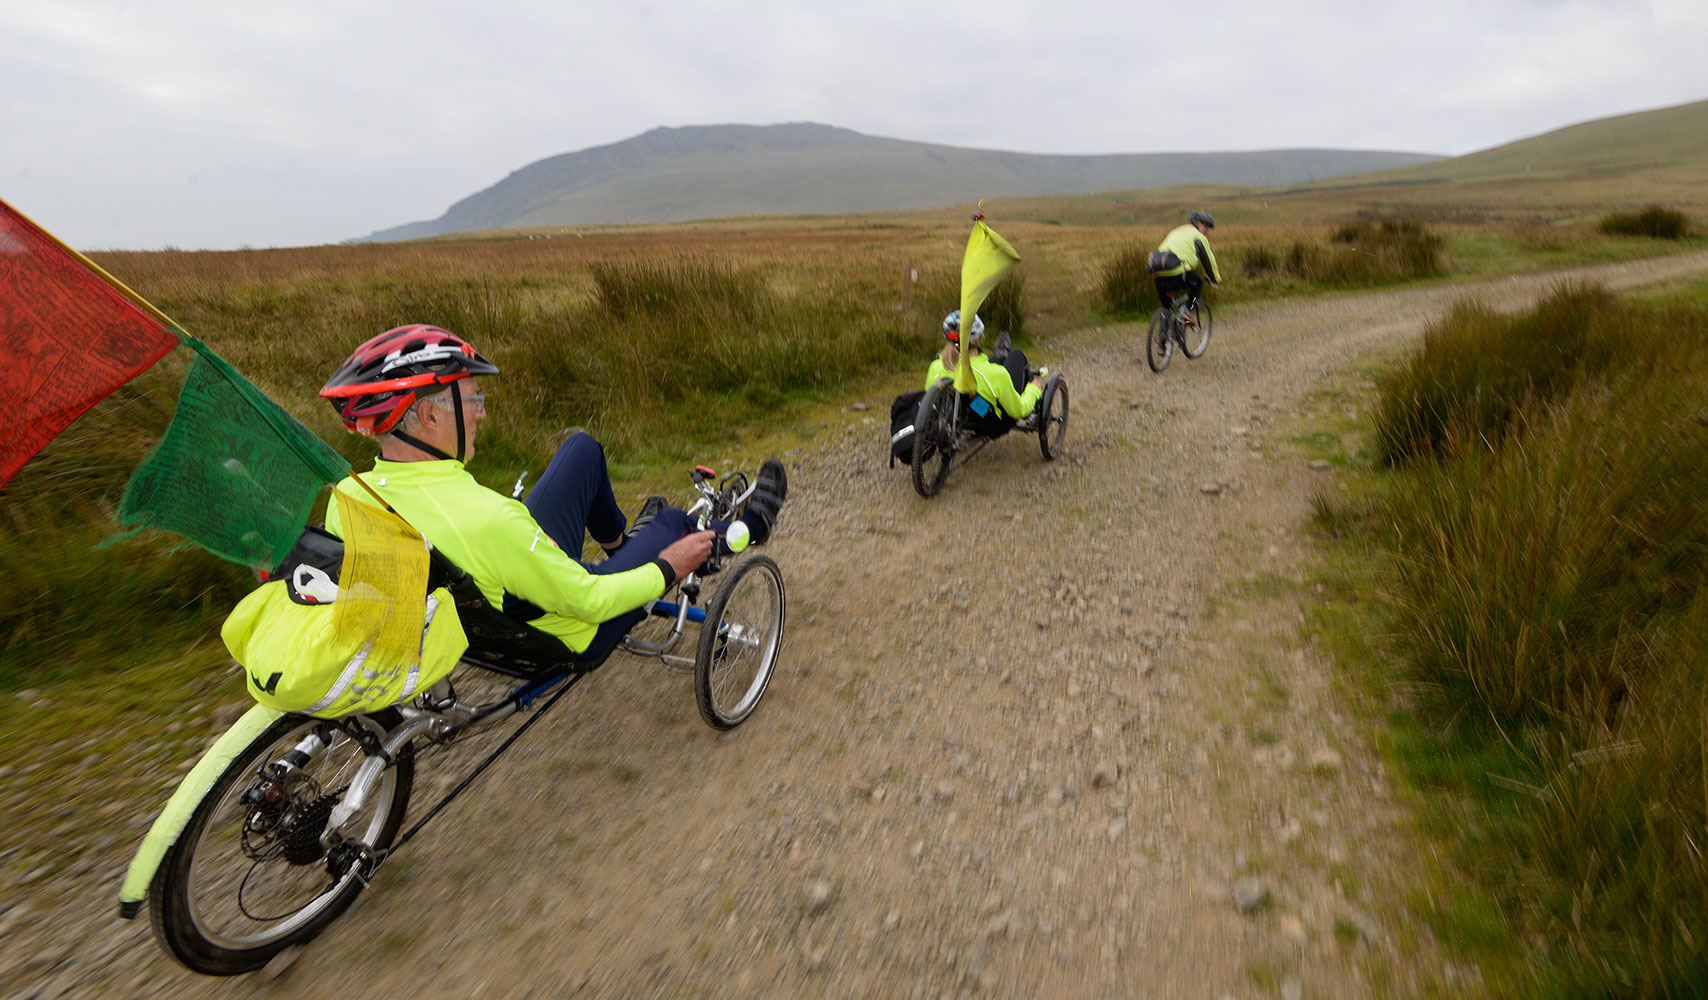 The Monster Miles is a 62 mile (55% off road) Cyclo-Cross Sportive in Cumbria organised by Cycling Weekly and run by Rather Be CyclingThis is Peter {quote}The Slime{quote} Knowles setting off on the Fellside Sector from Calebreck with team mate on recumbant bikes. Hardcore!